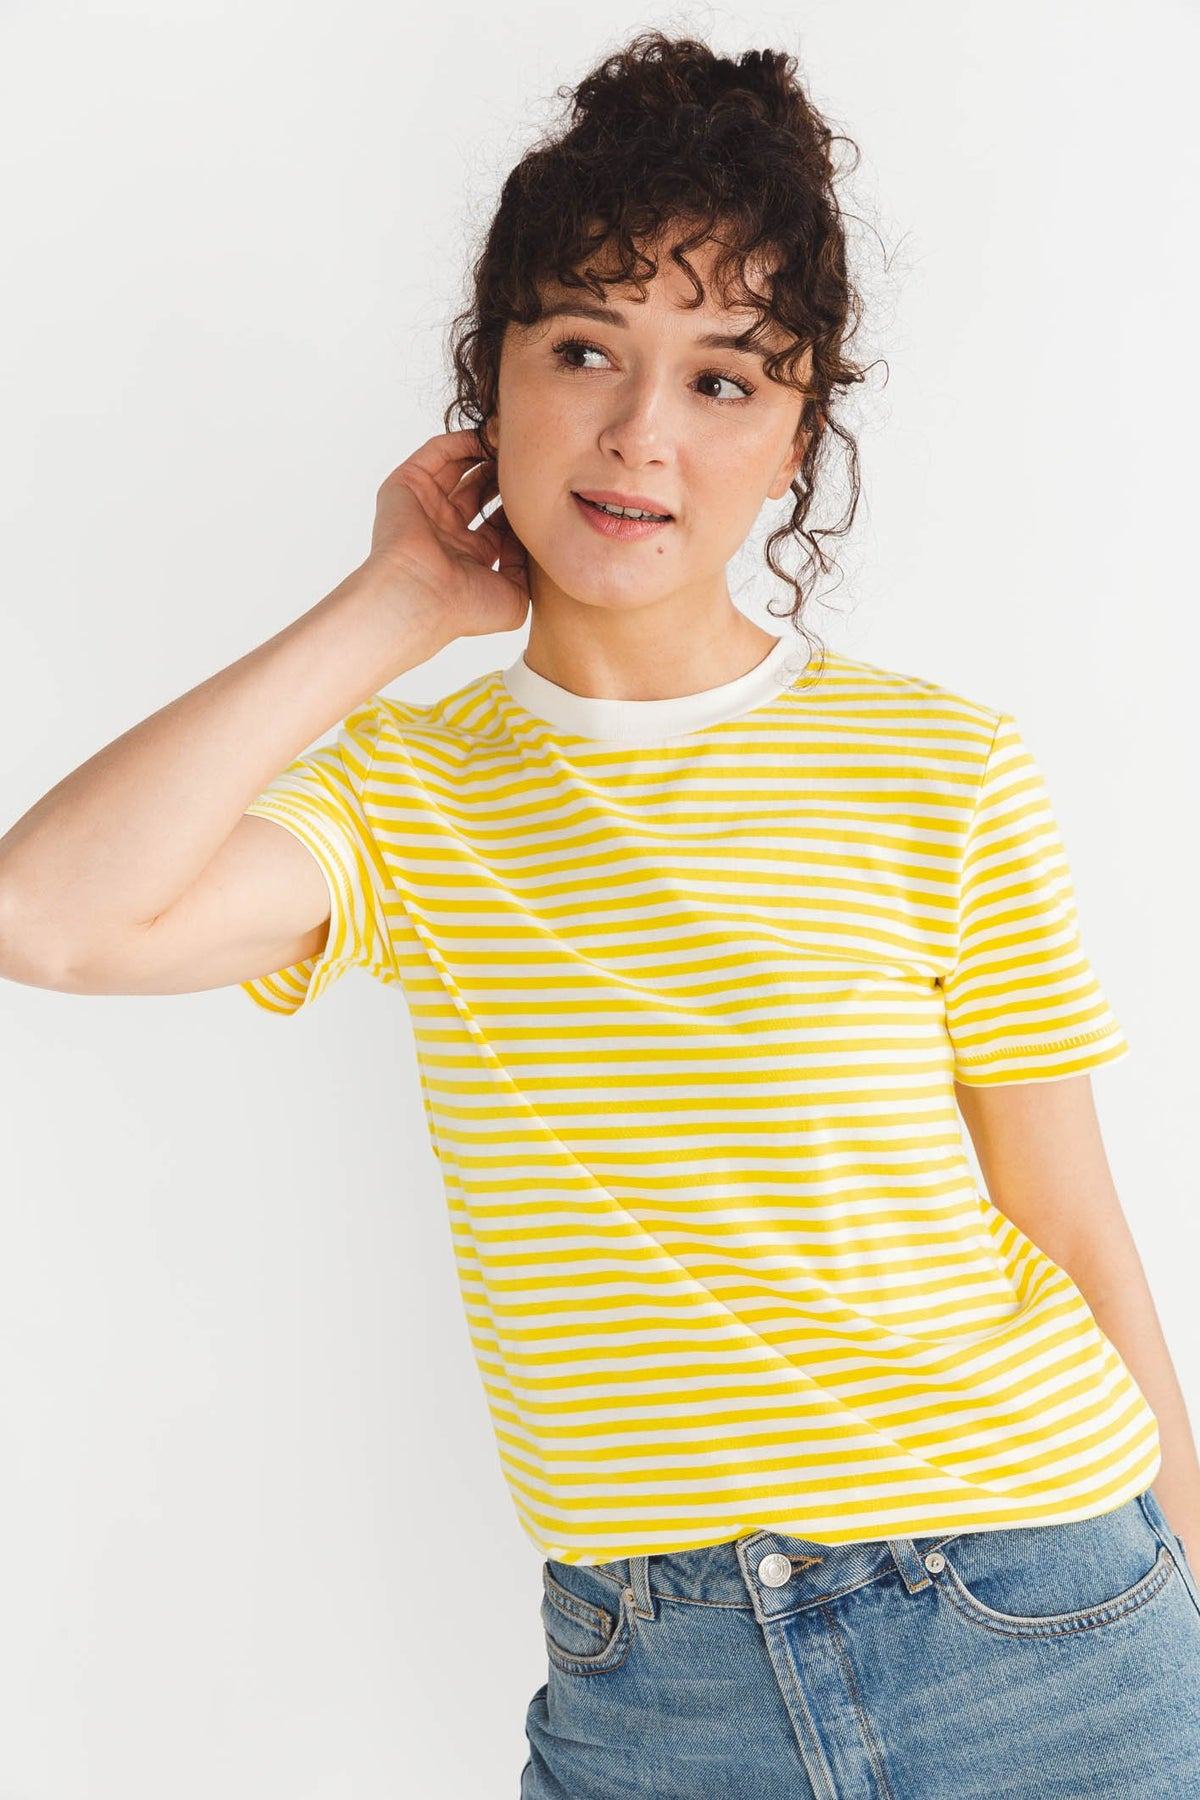 My Perfect Tee Empire Yellow Stripes